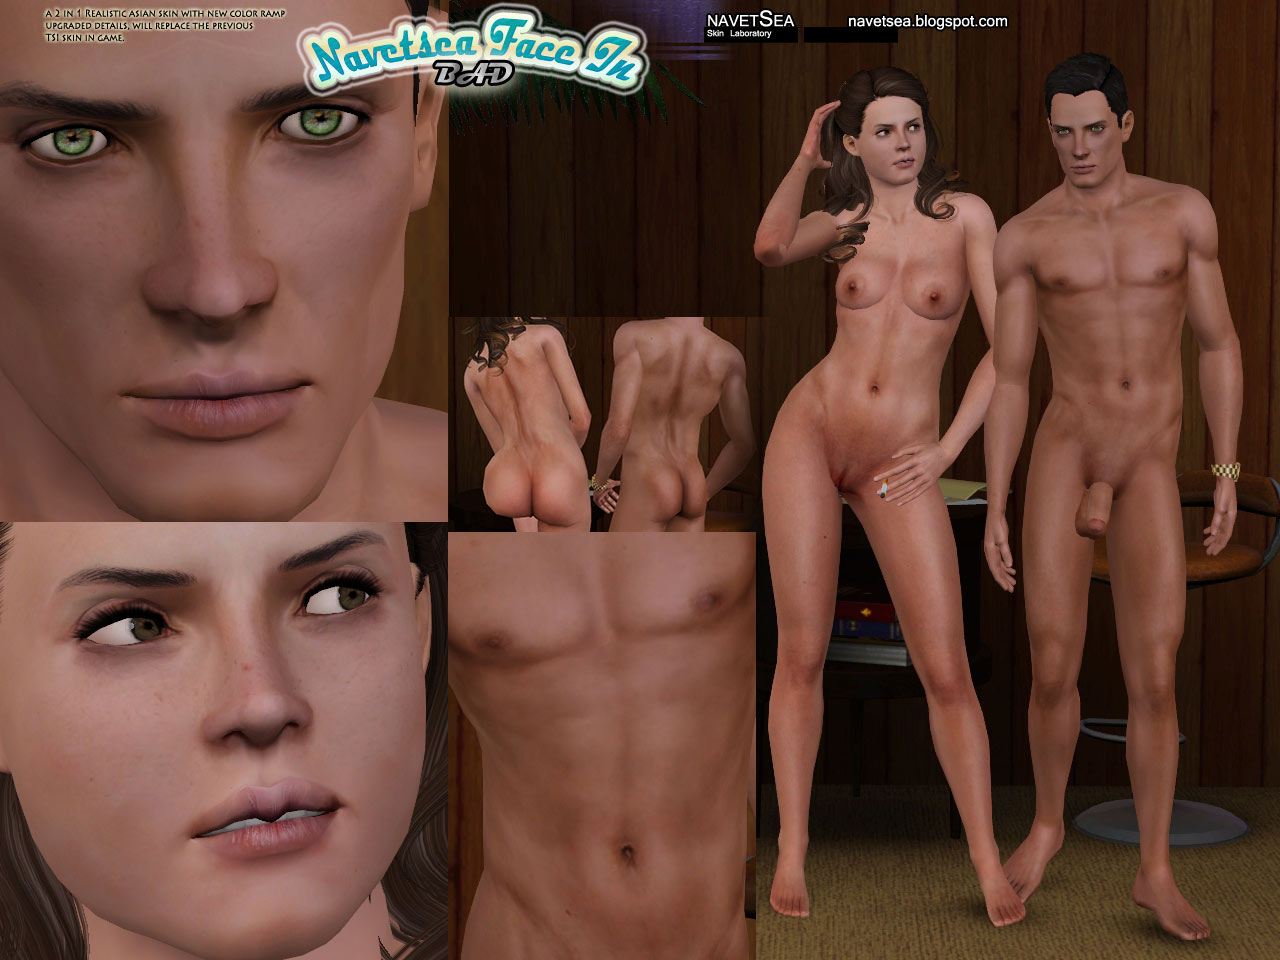 Sim naked patch free adult angel